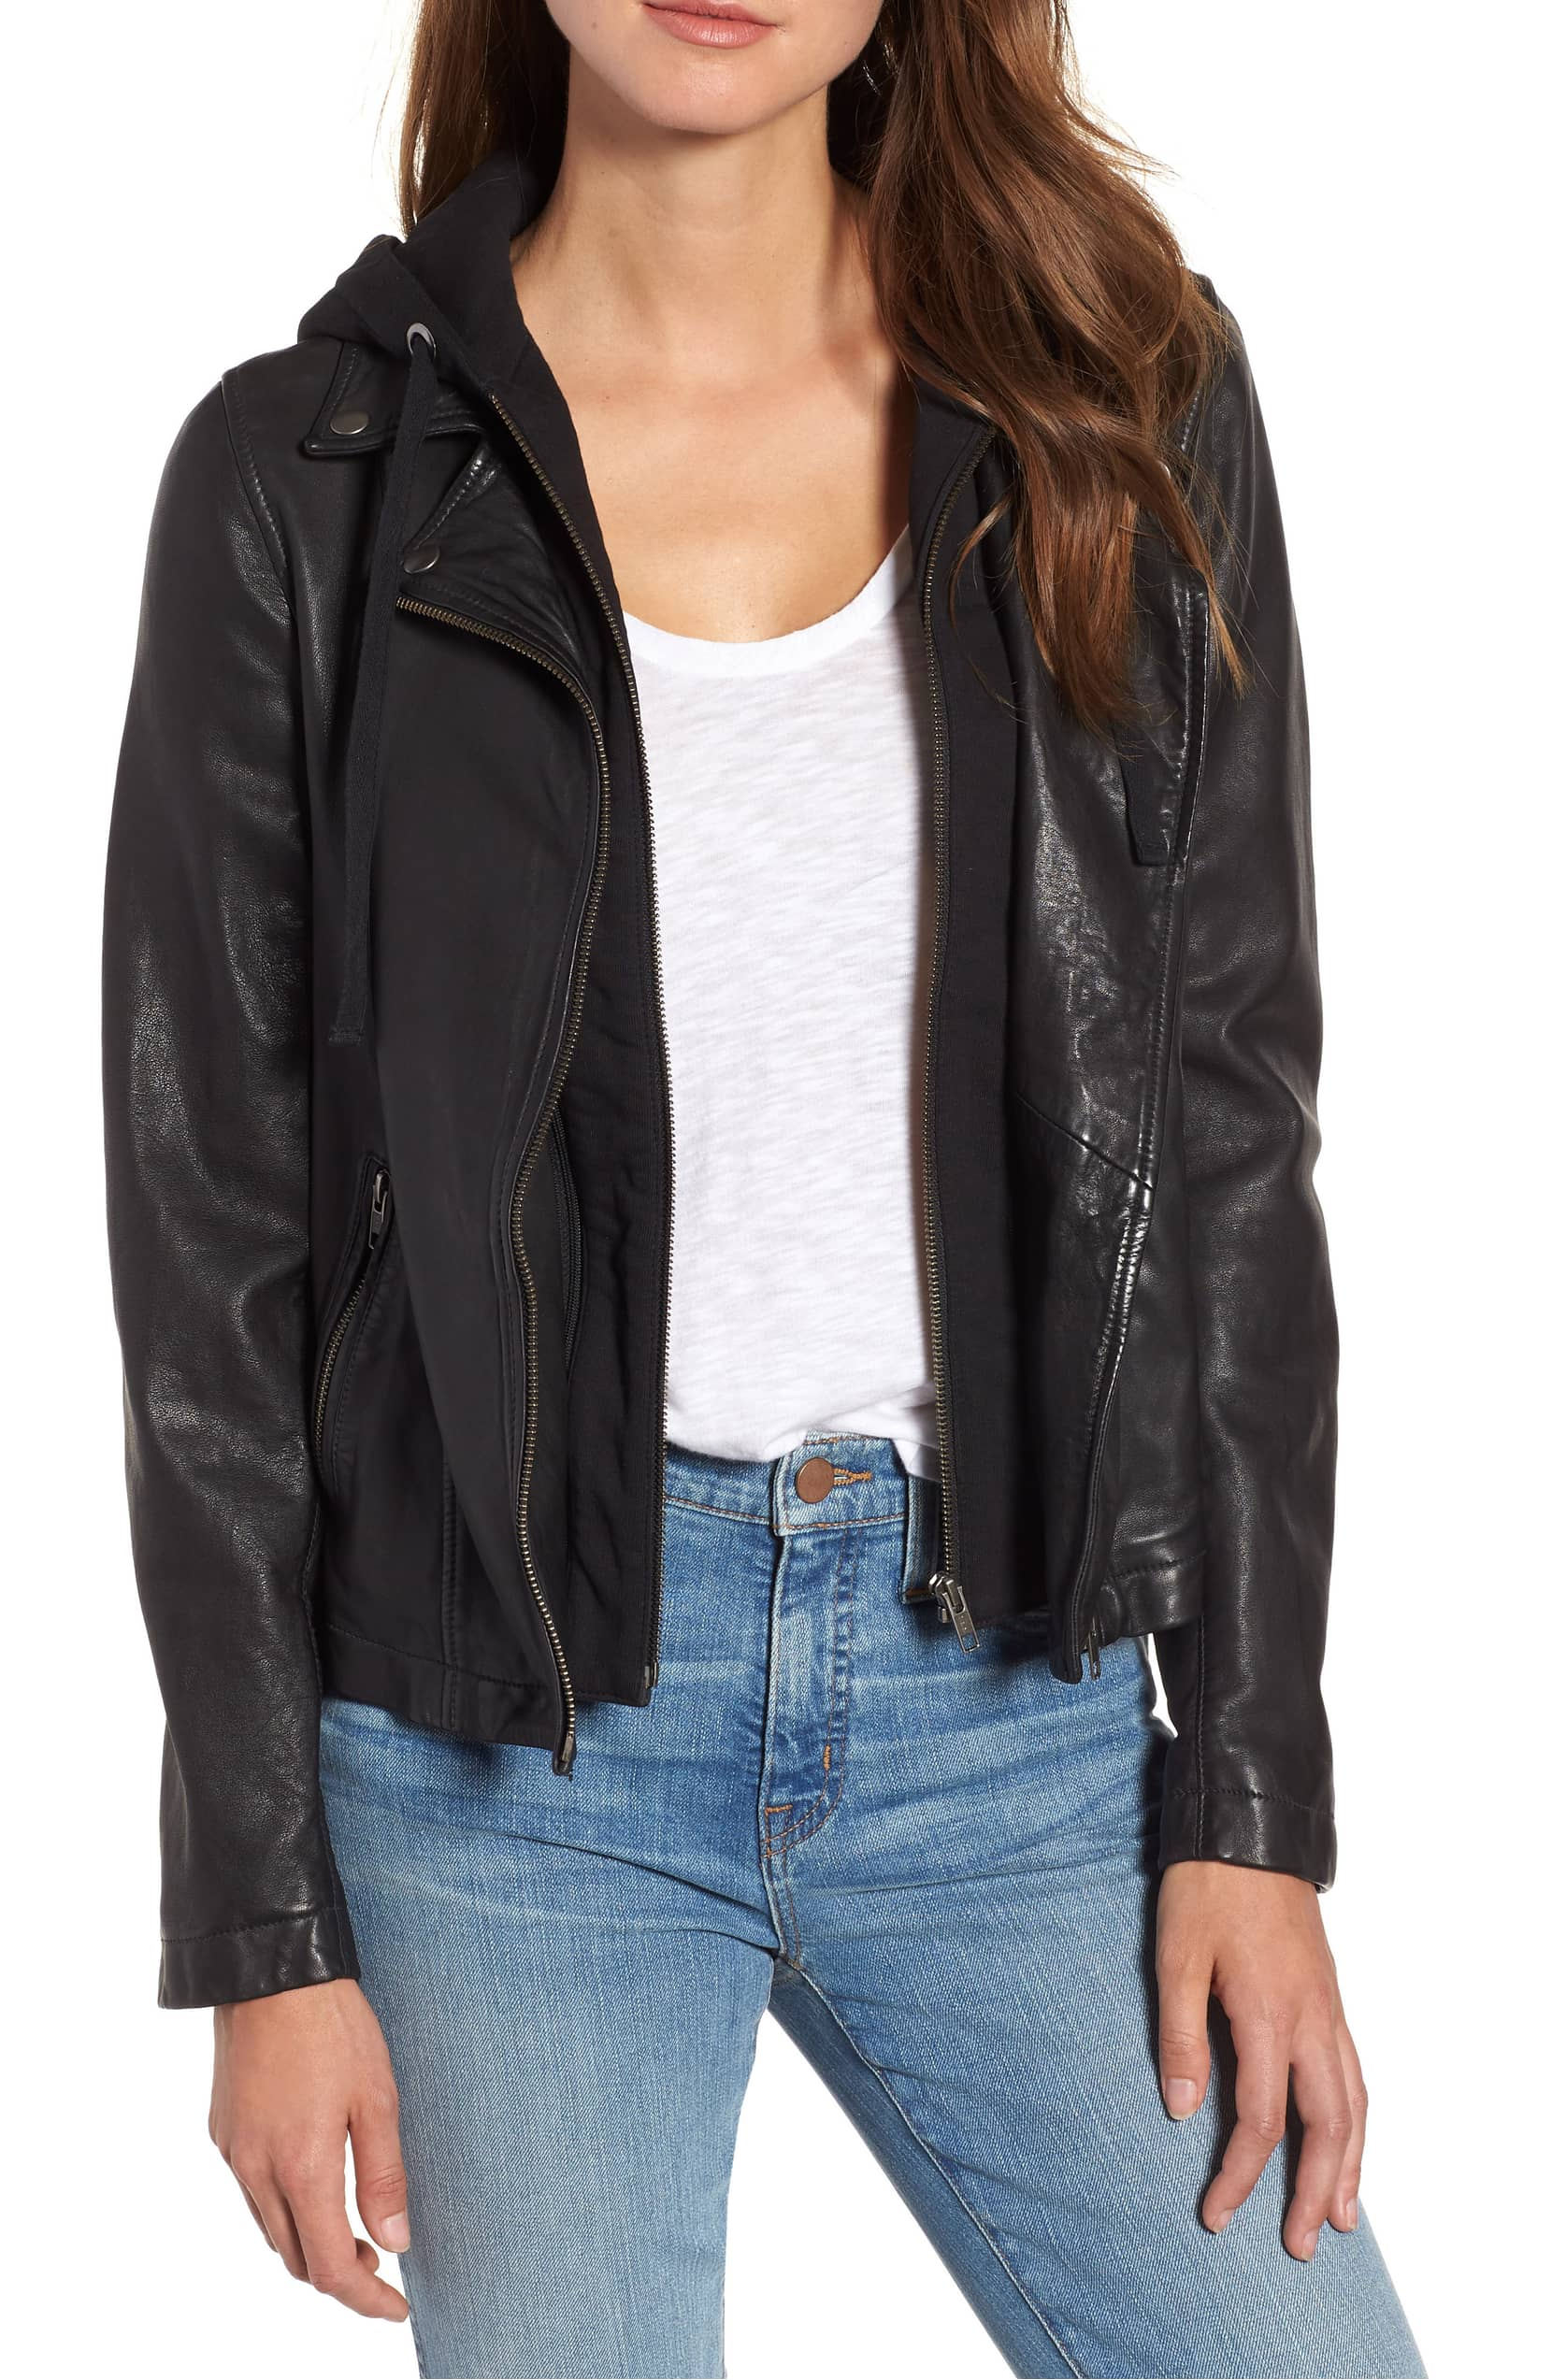 caslon leather jacket with a removable hood